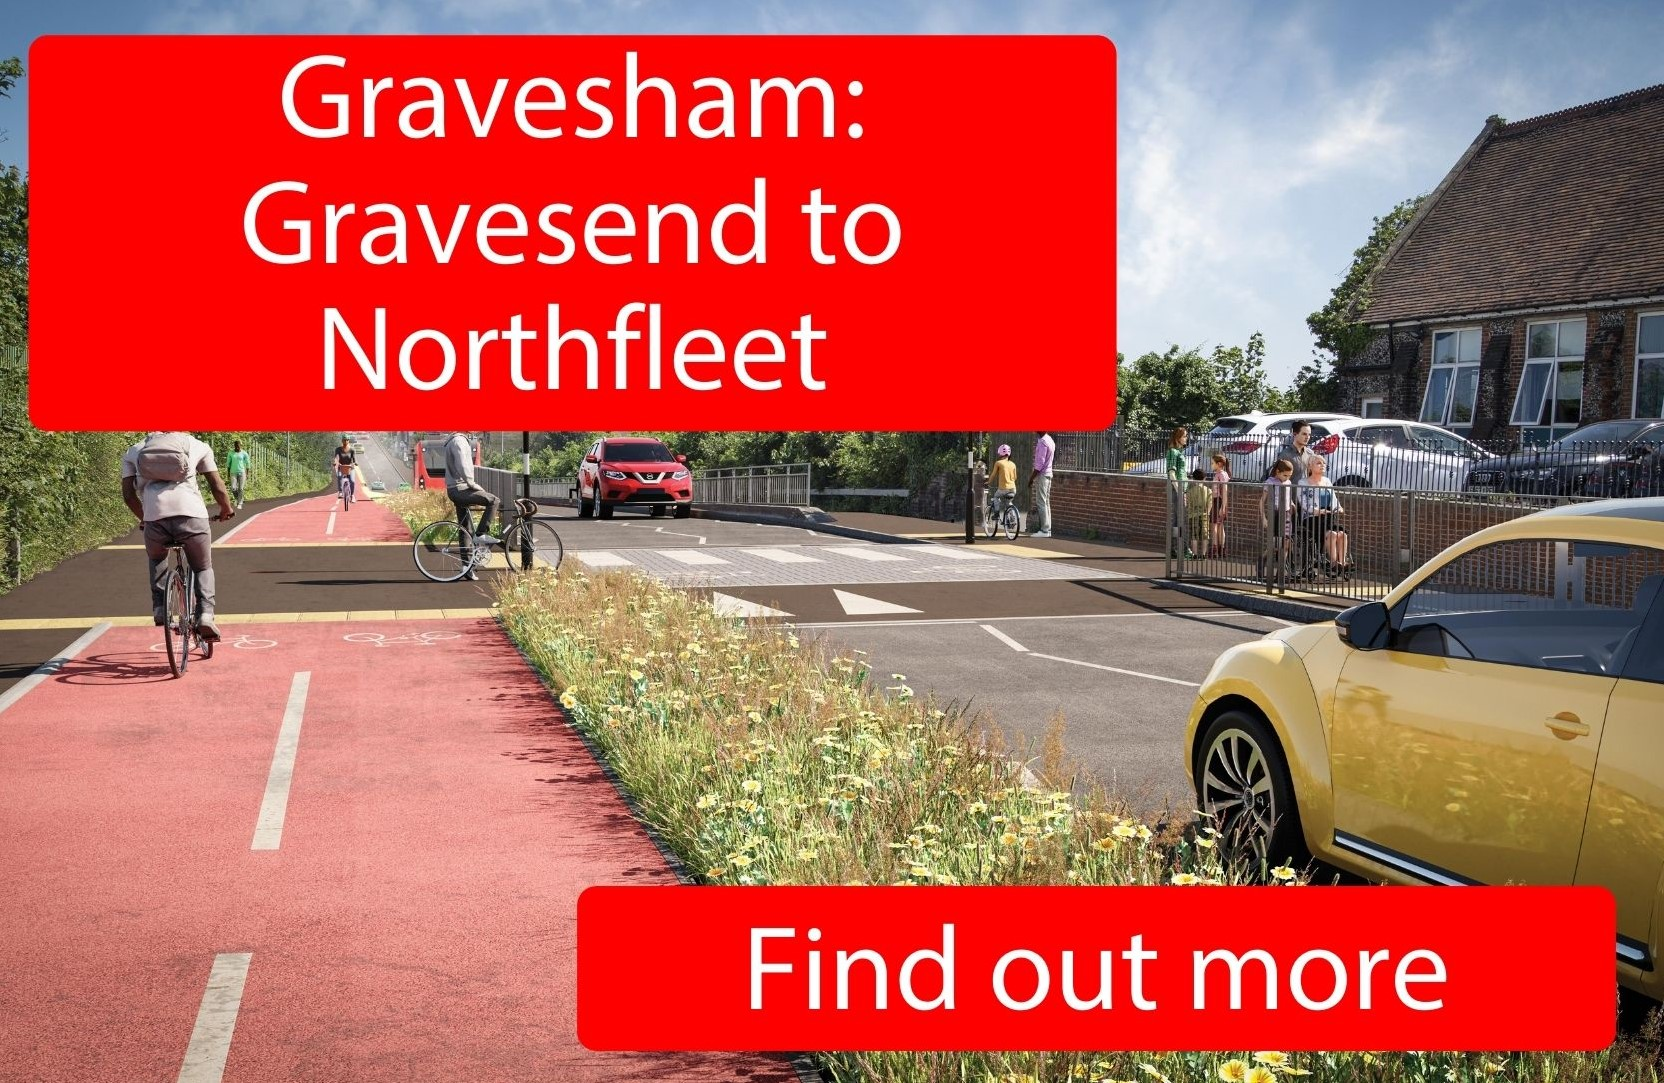 Gravesham: Gravesend to Northfleet - click here to find out more.